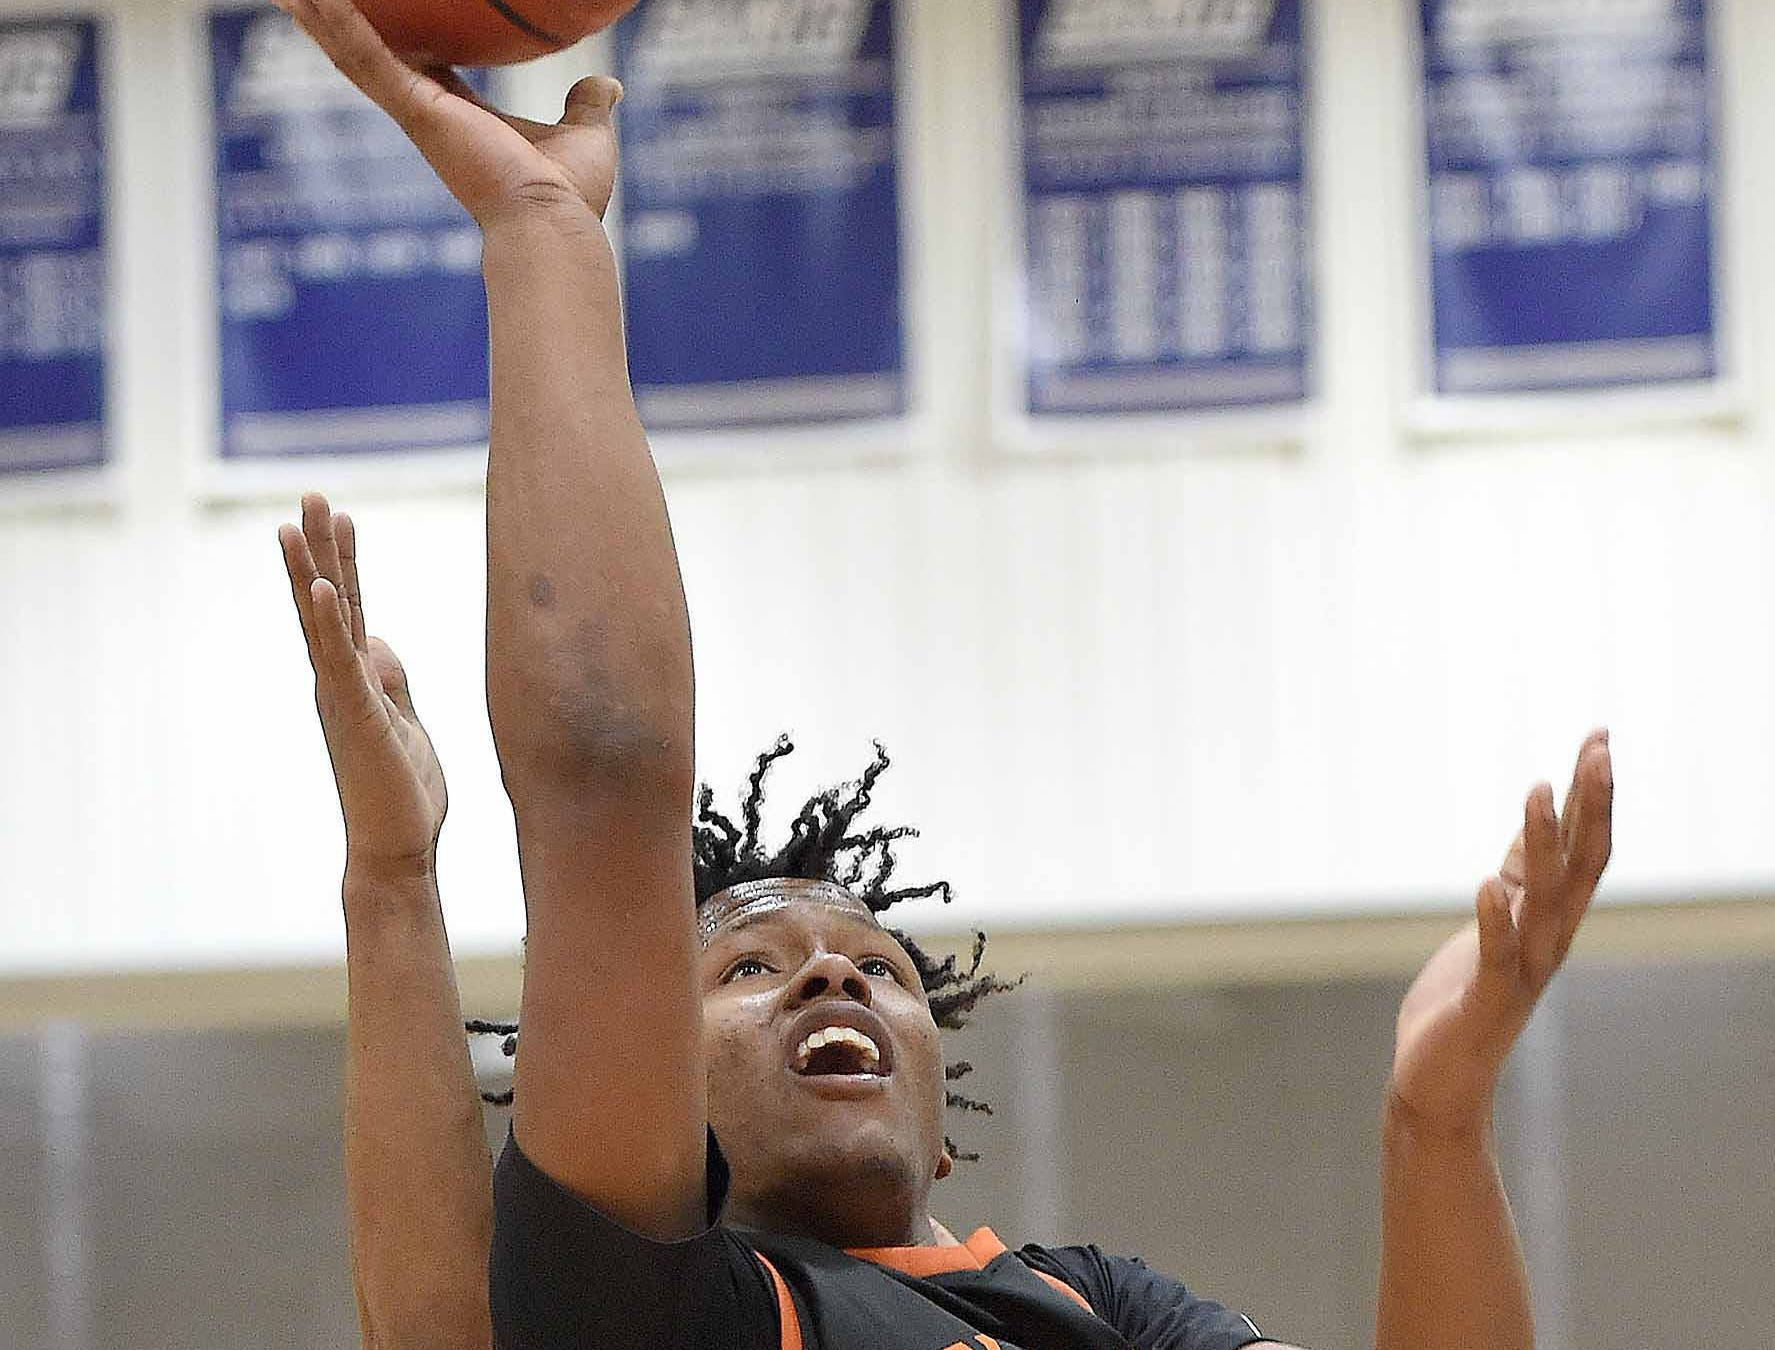 Callaway's Cuwandric Samuel (5) hits a layup against Raymond on Monday, January 21, 2019, at the Rumble in the South high school basketball tournament at St. Andrew's Episcopal School in Ridgeland, Miss.